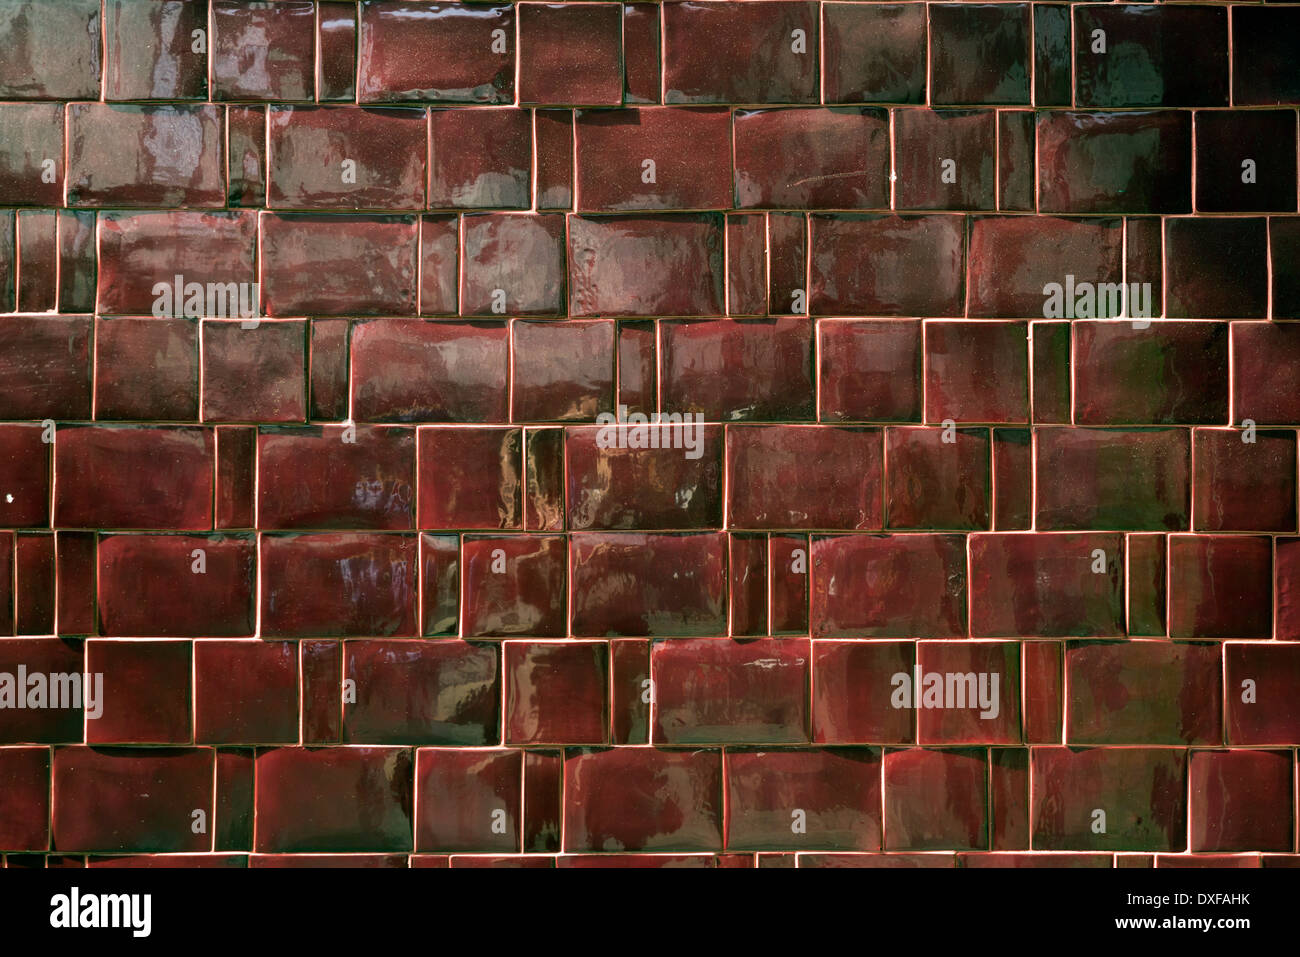 Background Of Bright Red Ceramic Tile Stock Photo 67949775 Alamy